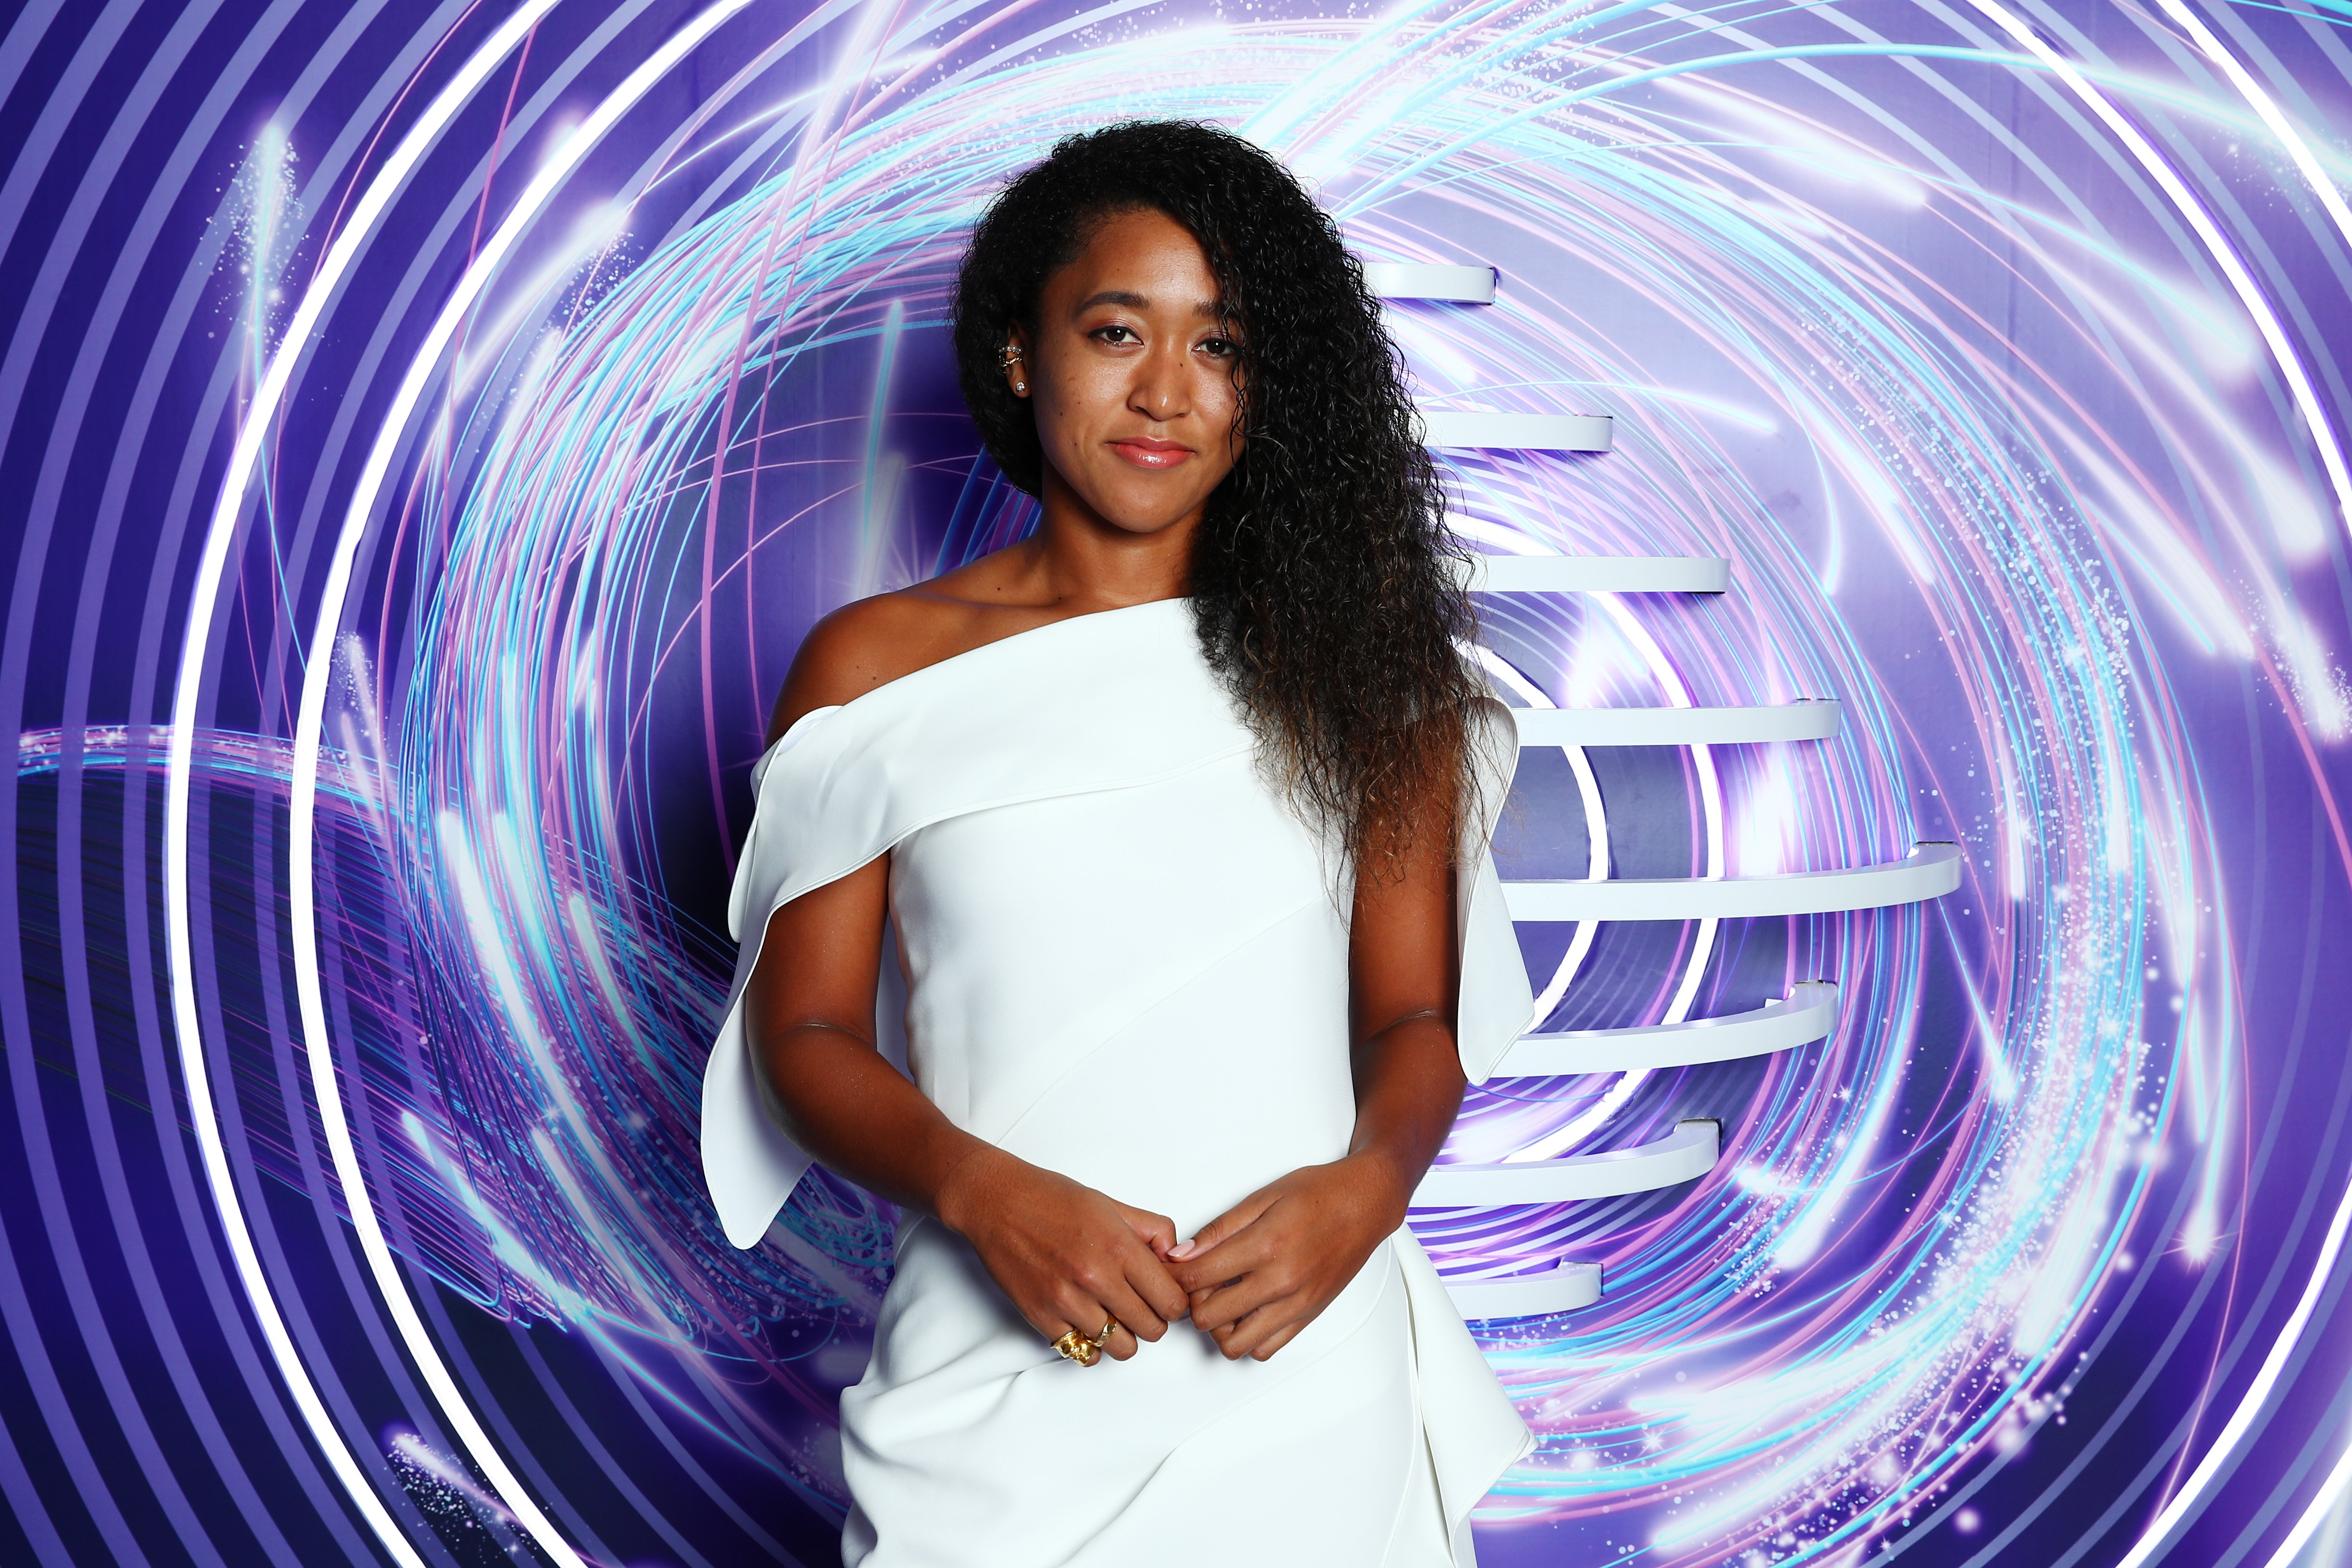 Naomi Osaka attends the Official Draw Ceremony and Gala of the 2019 WTA Finals at Hilton Shenzhen Shekou Nanhai on October 25, 2019 in Shenzhen, China | Photo: Getty Images